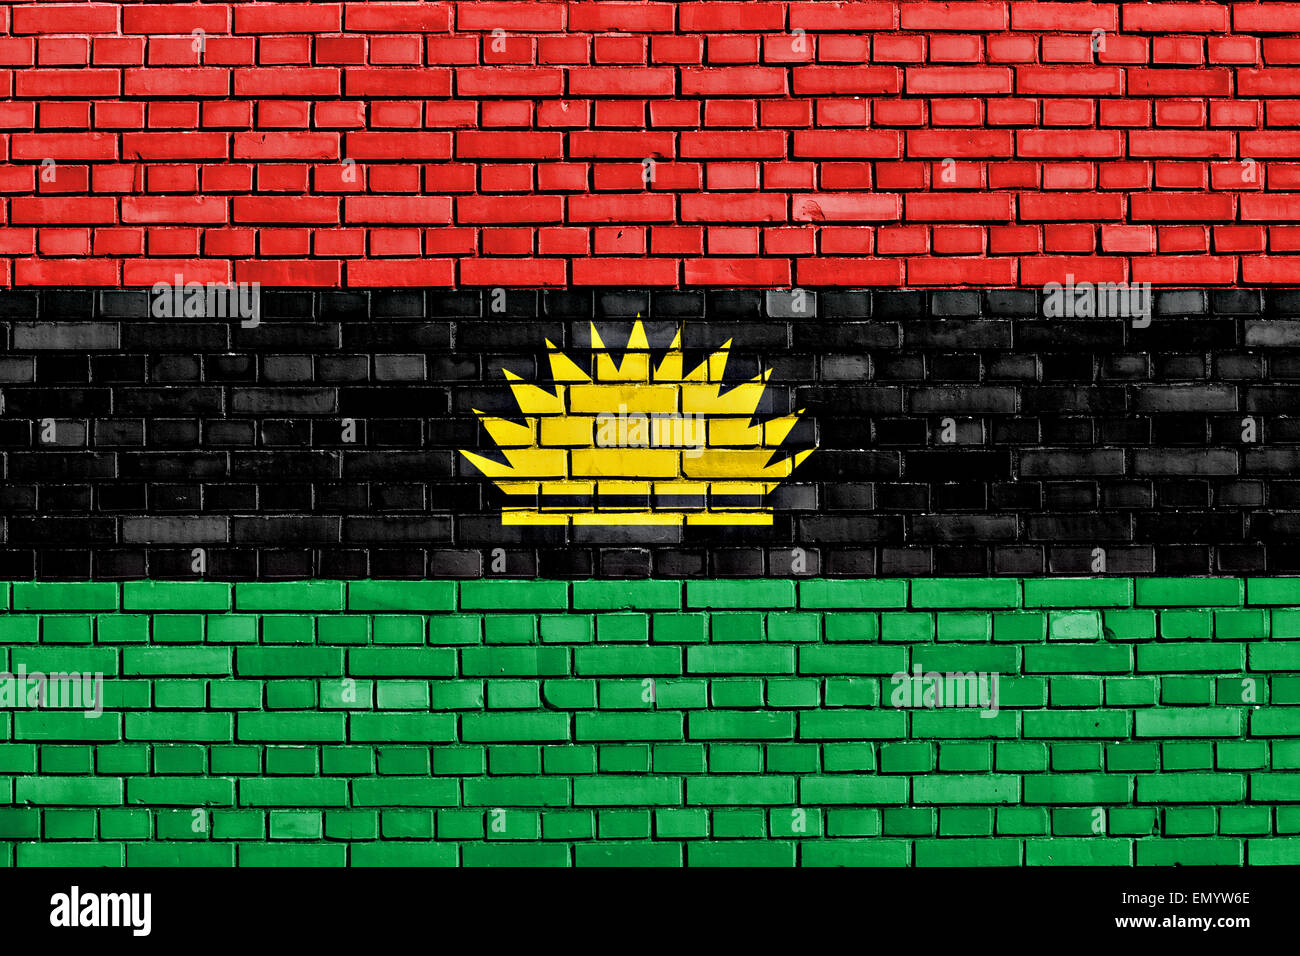 Biafra flag stock photos biafra flag stock images alamy flag of biafra painted on brick wall stock image thecheapjerseys Image collections